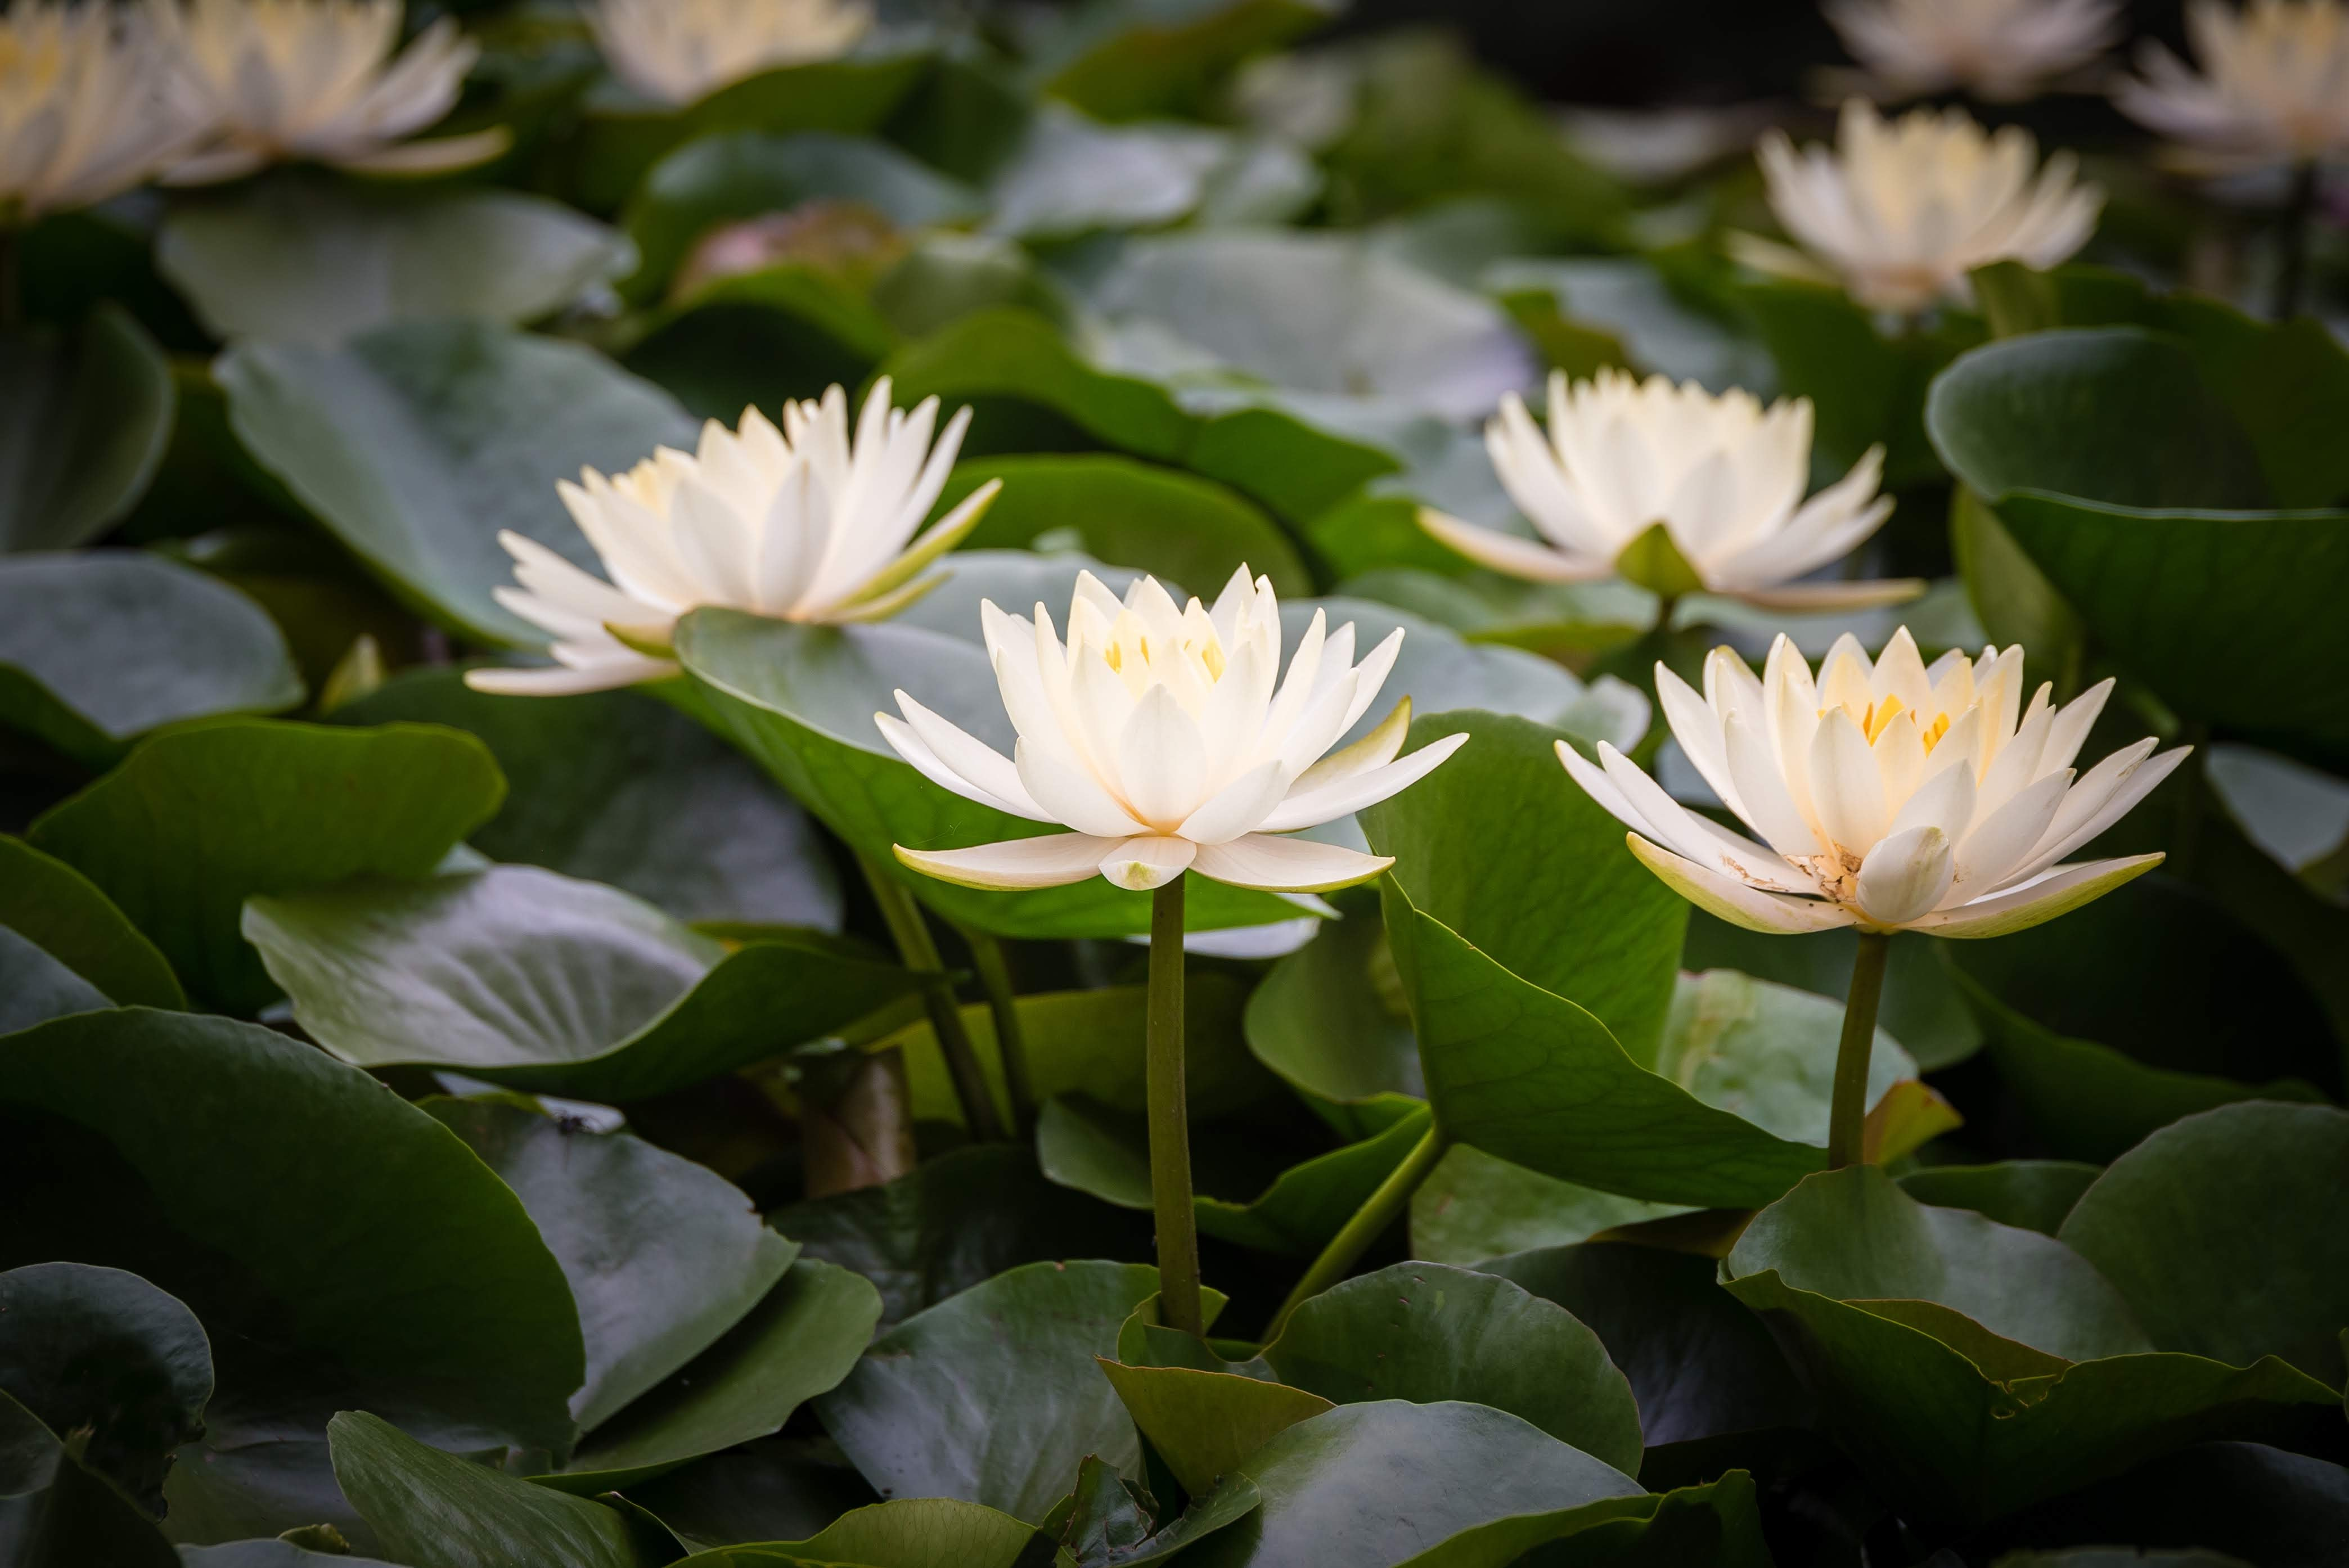 white and green petaled flower